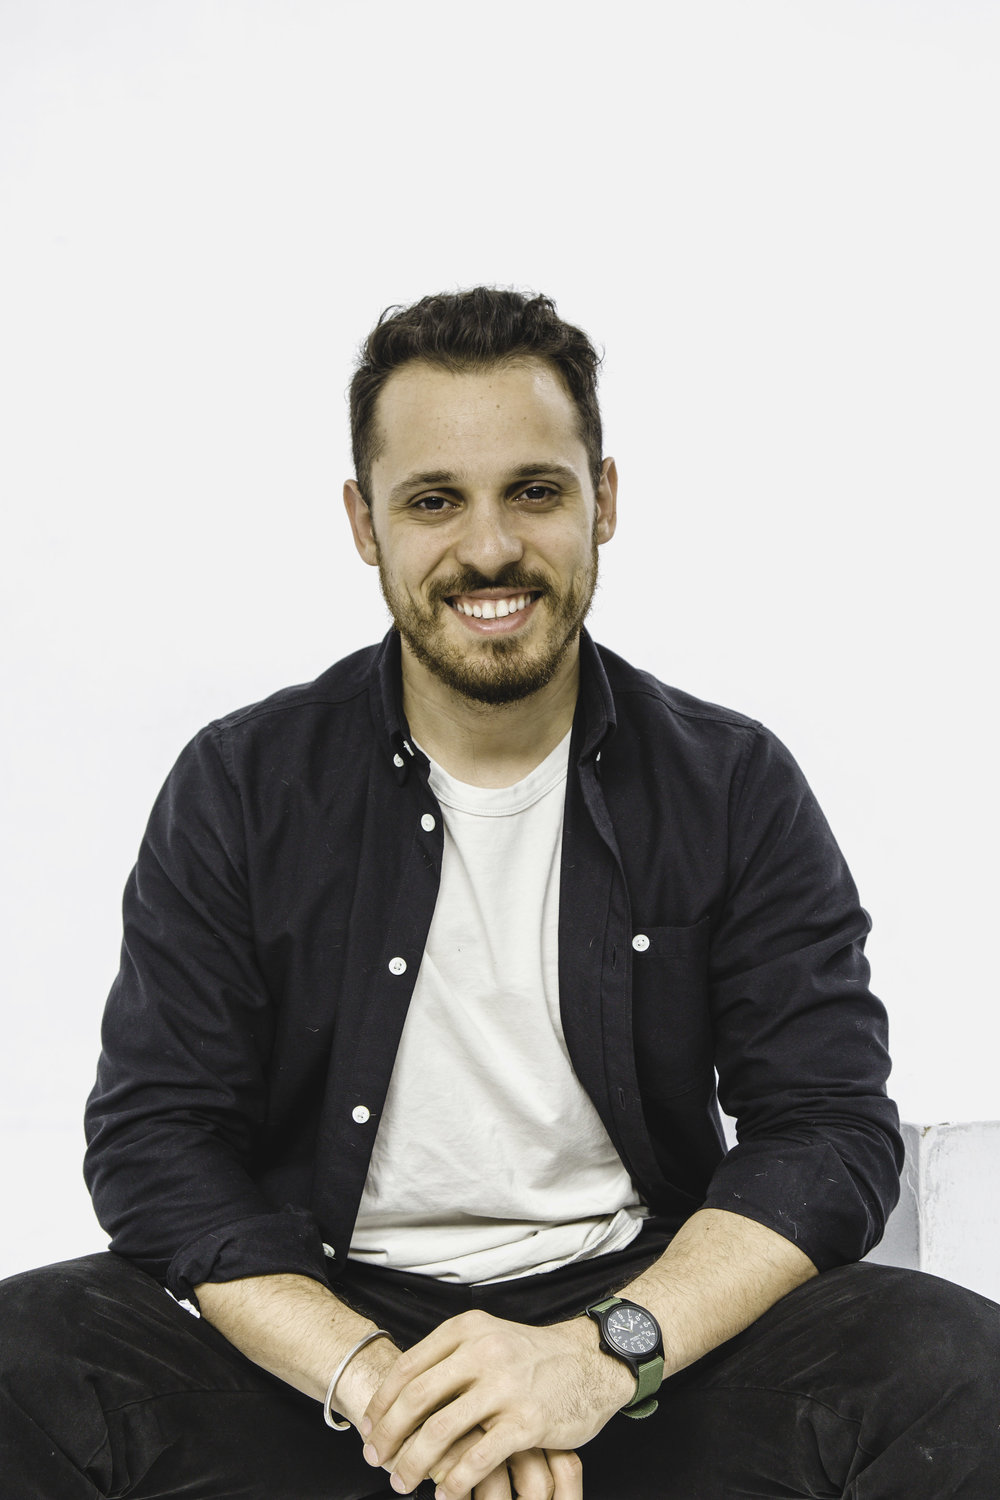 MEETMike Malz - Marketer and designer with experience building both brands and products.I believe building the best products means creating an incredible experience at every interaction.